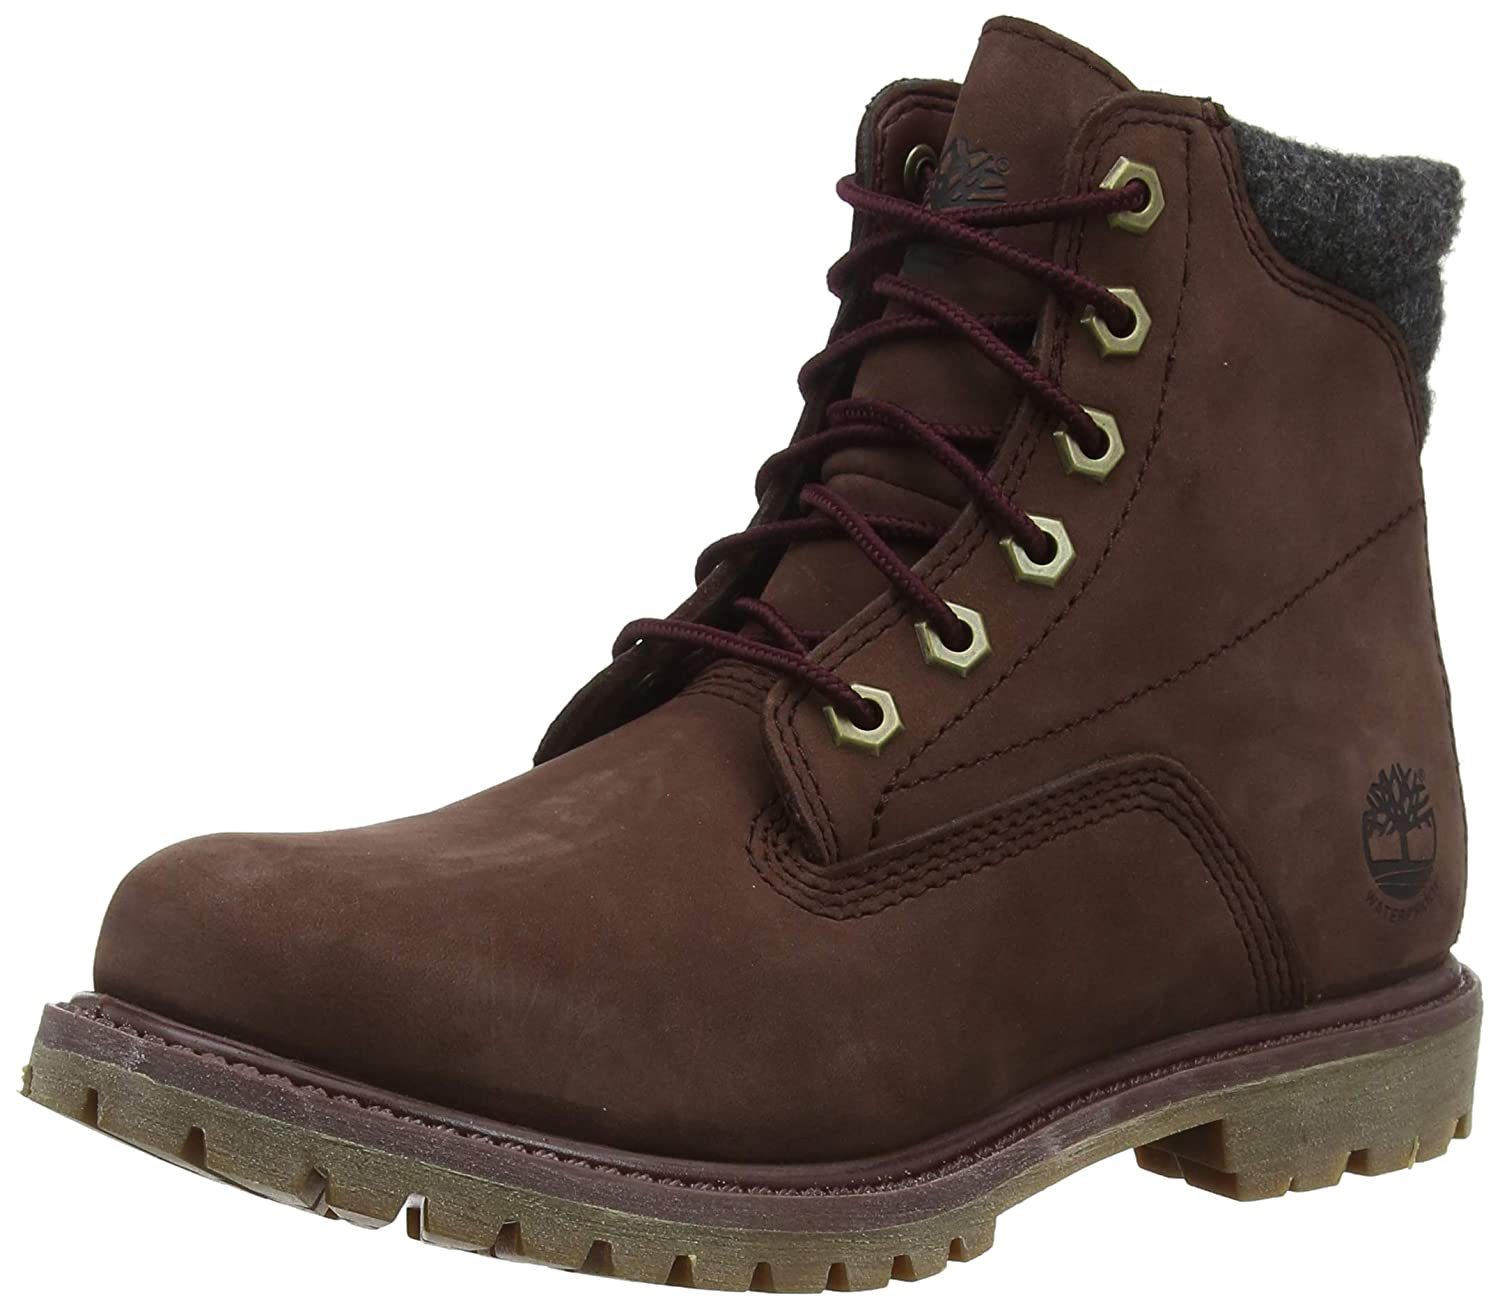 Timberland Women's Waterville 6 Inch Basic Waterproof Lace up Boots